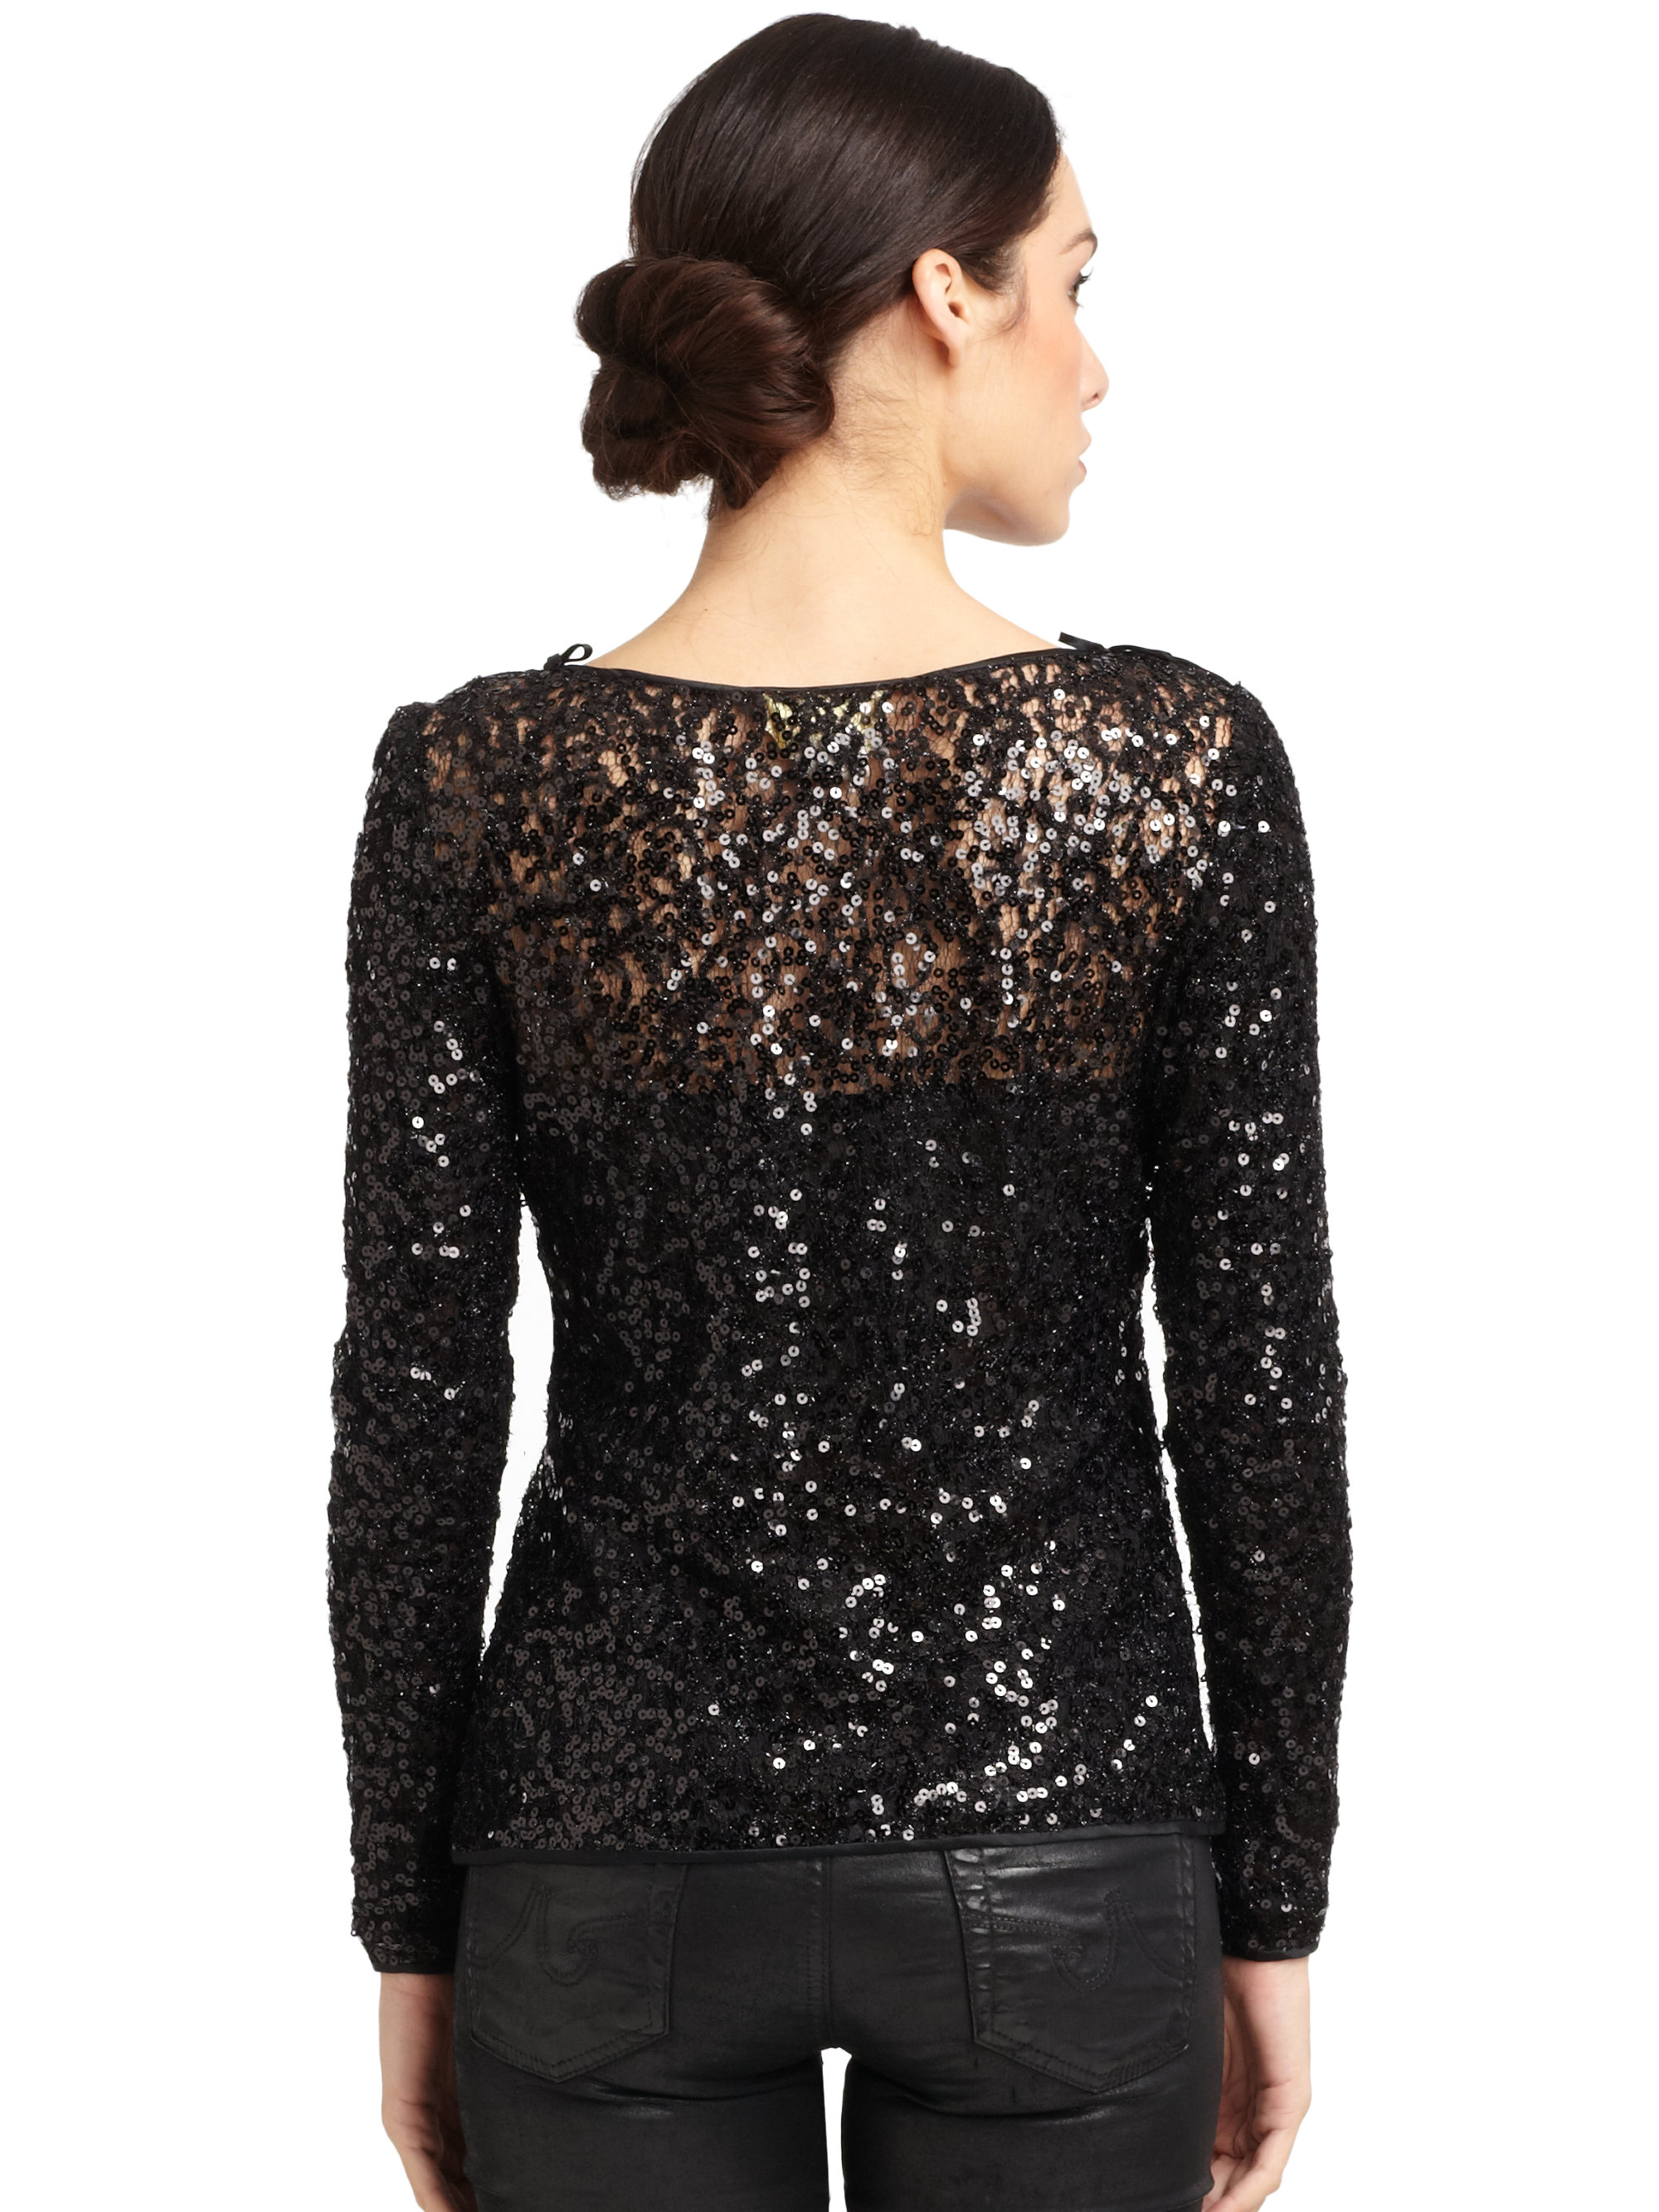 All Fashion Nova models are wearing size small in tops and dresses, and size 1, 3, or 5 in jeans depending on their body type. Most Fashion Nova jeans & dresses have great stretch, please refer to product description for fabric details.